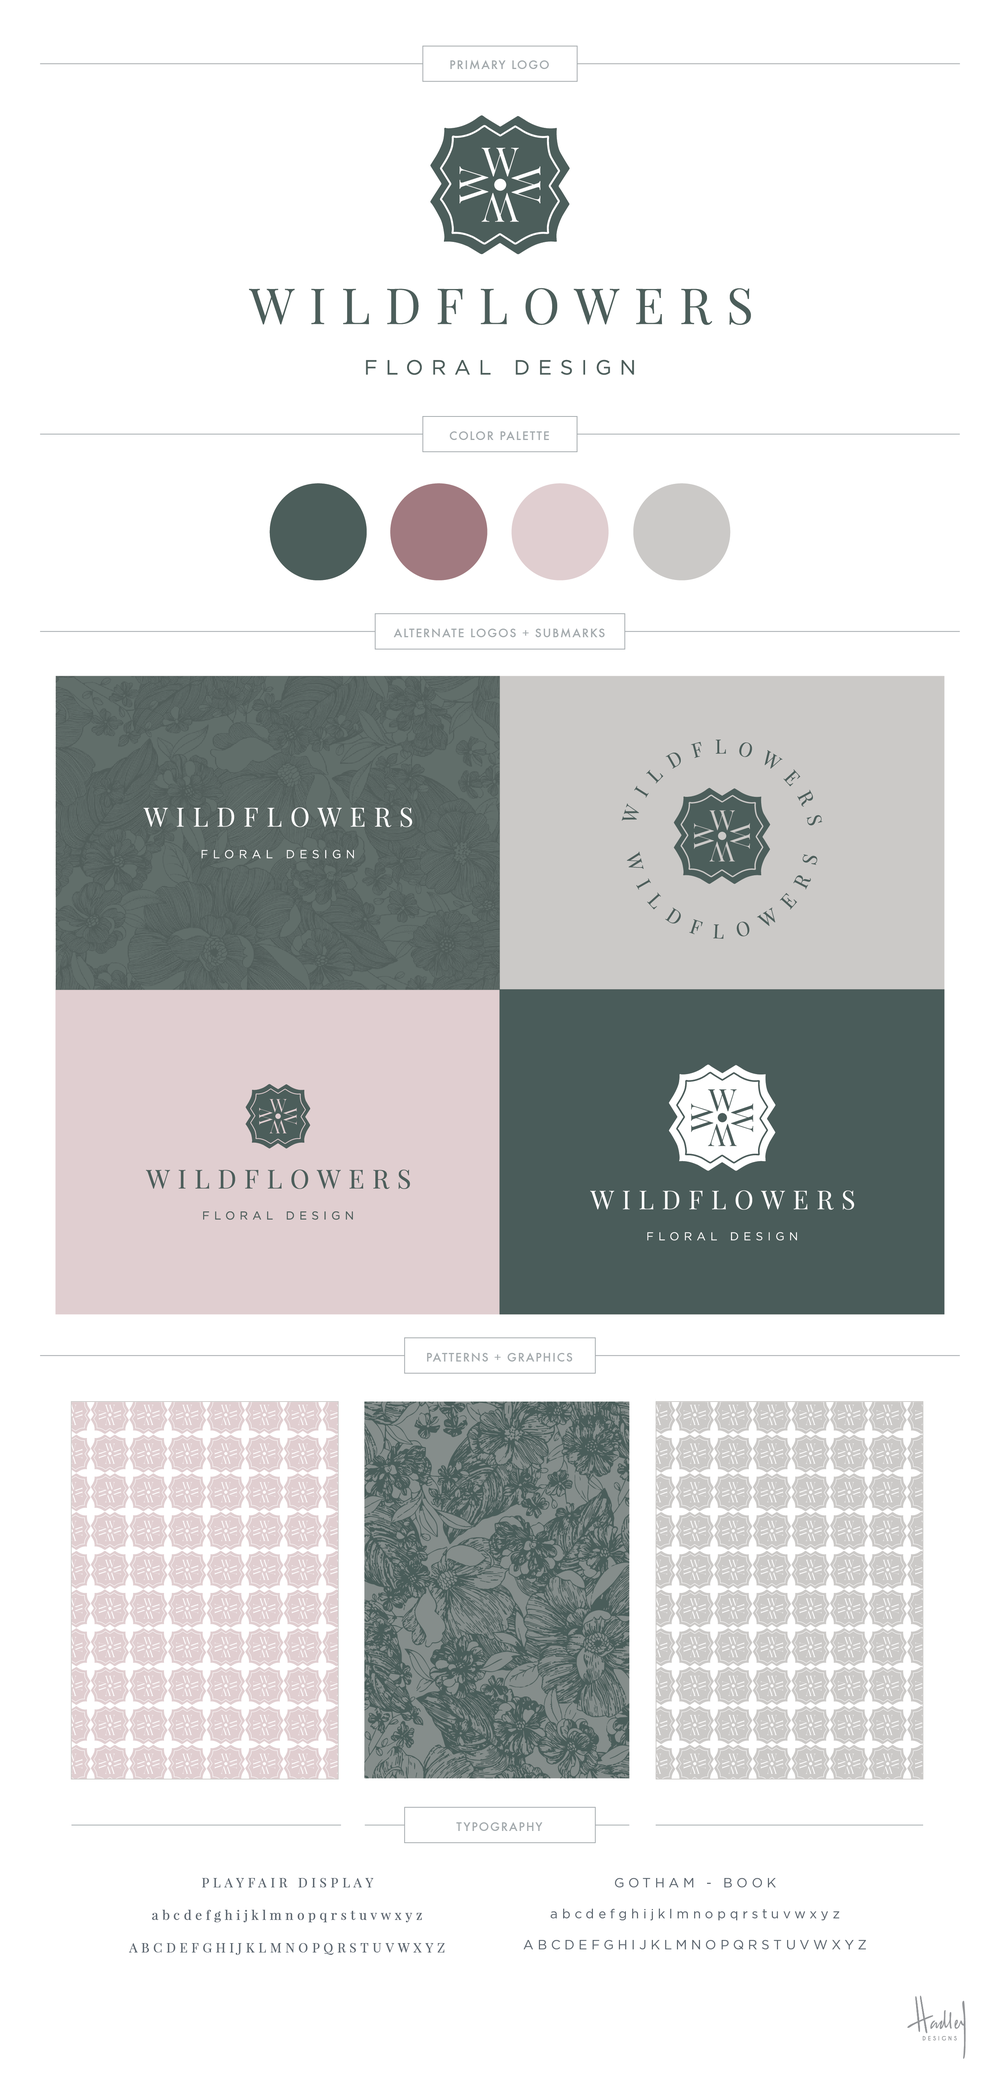 Wildflowers_Branding2.png